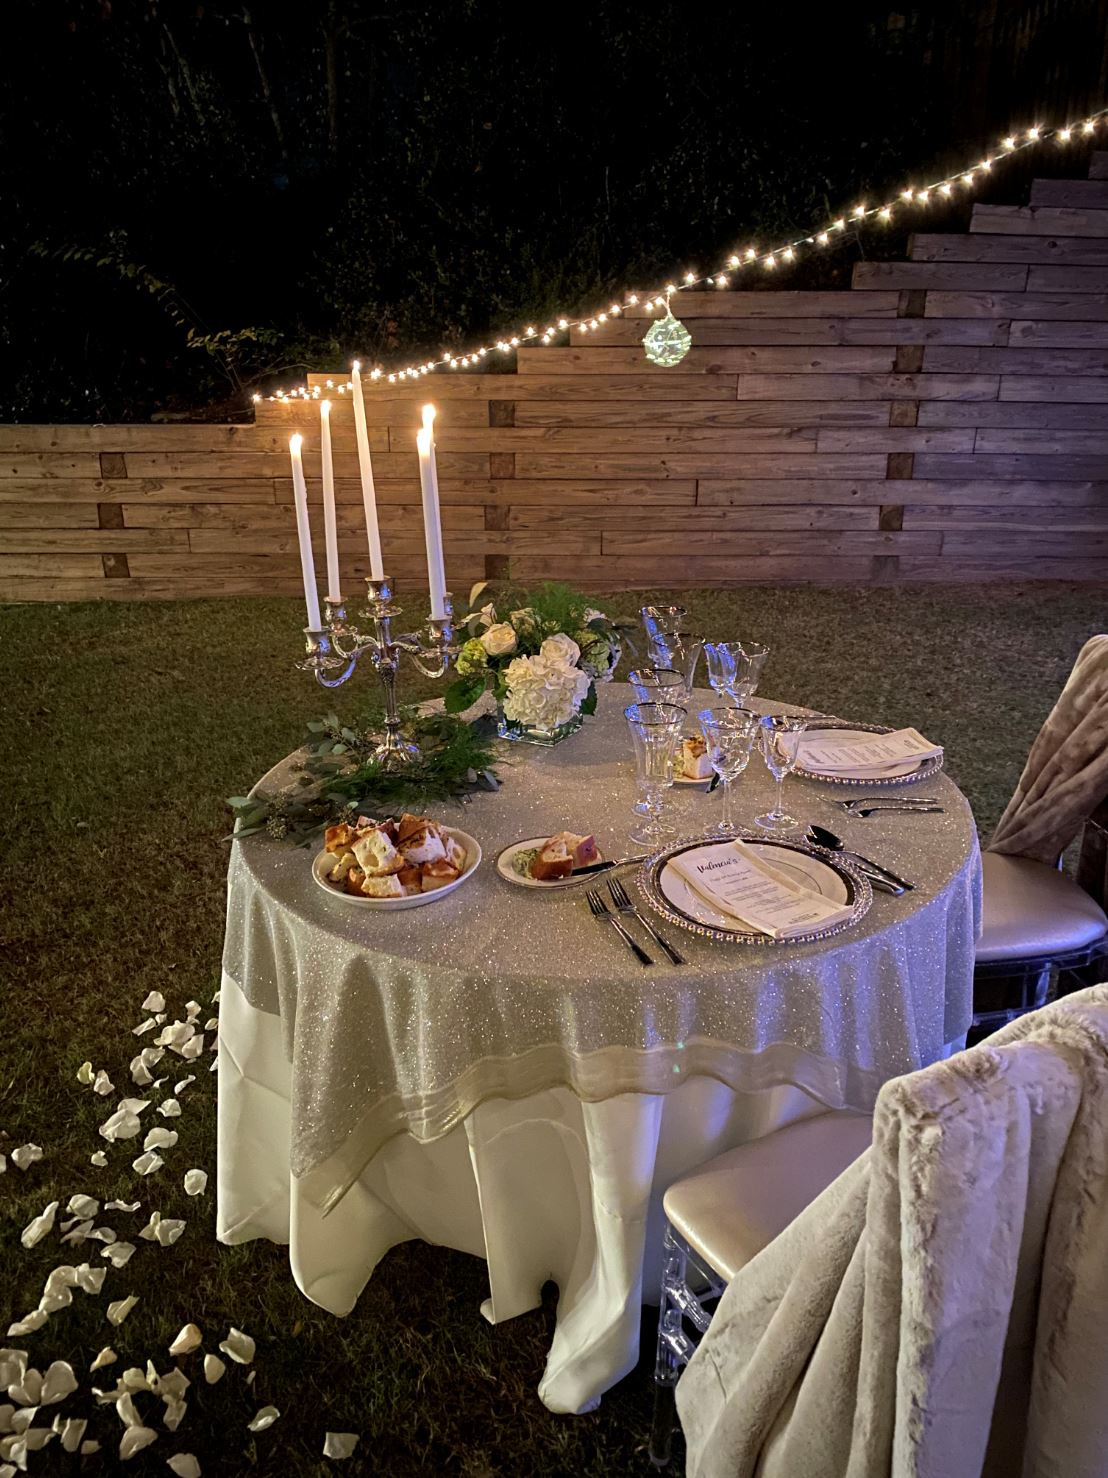 Fancy private party table setting with white rollups, chargers, custom menu and floral arrangements